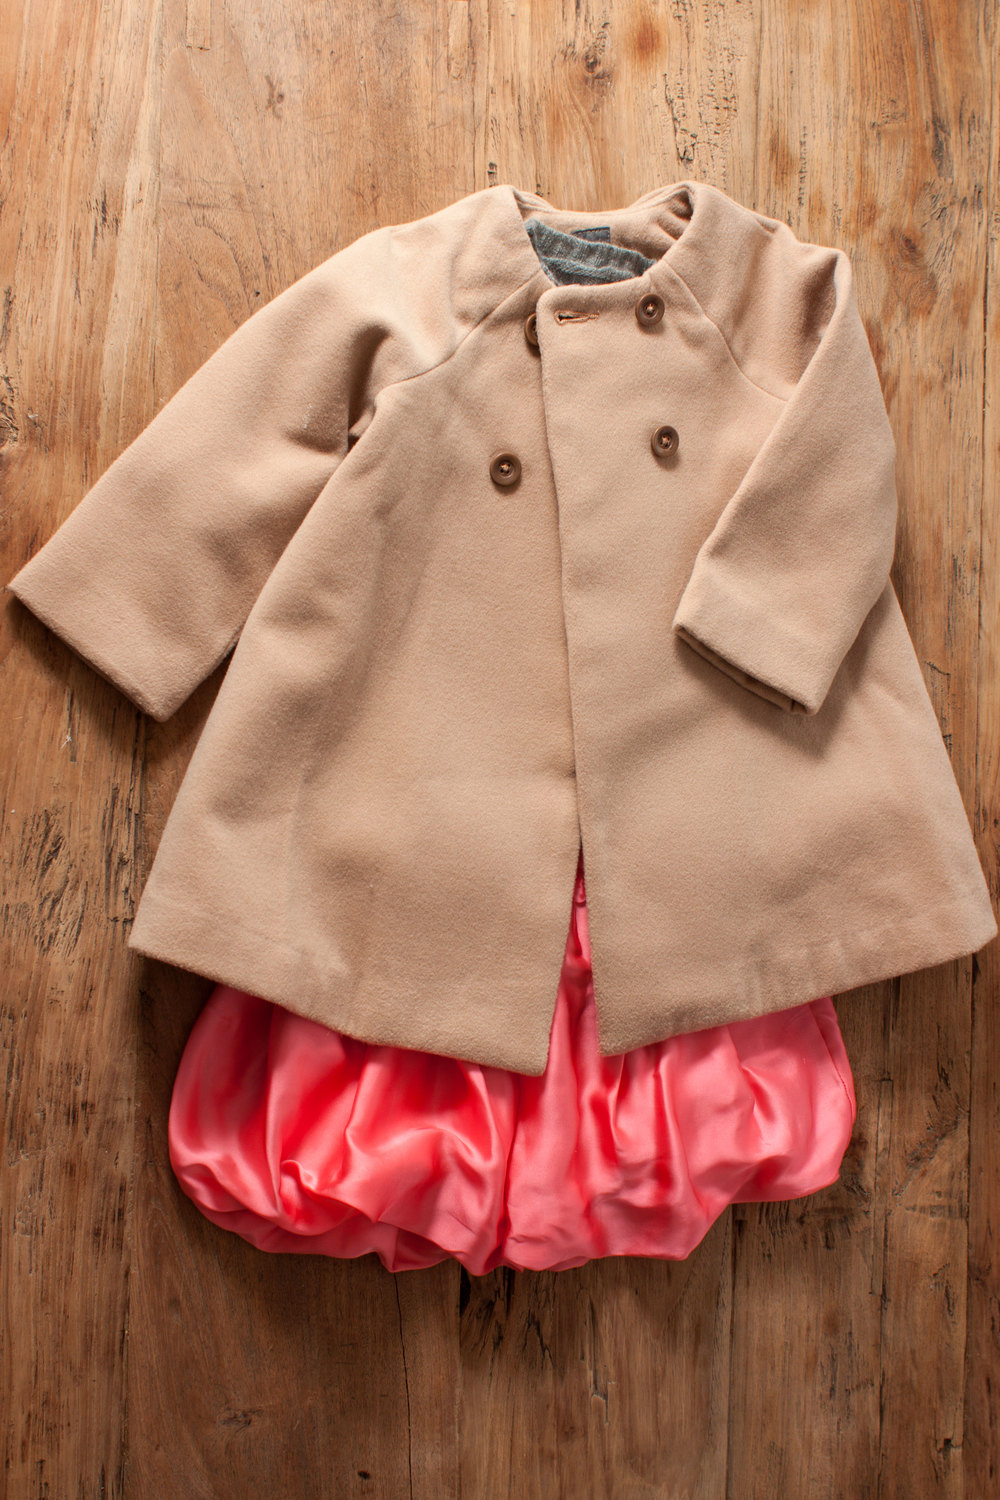 Includes Girls Crewcuts bubble skirt. Size: 2T $11.50